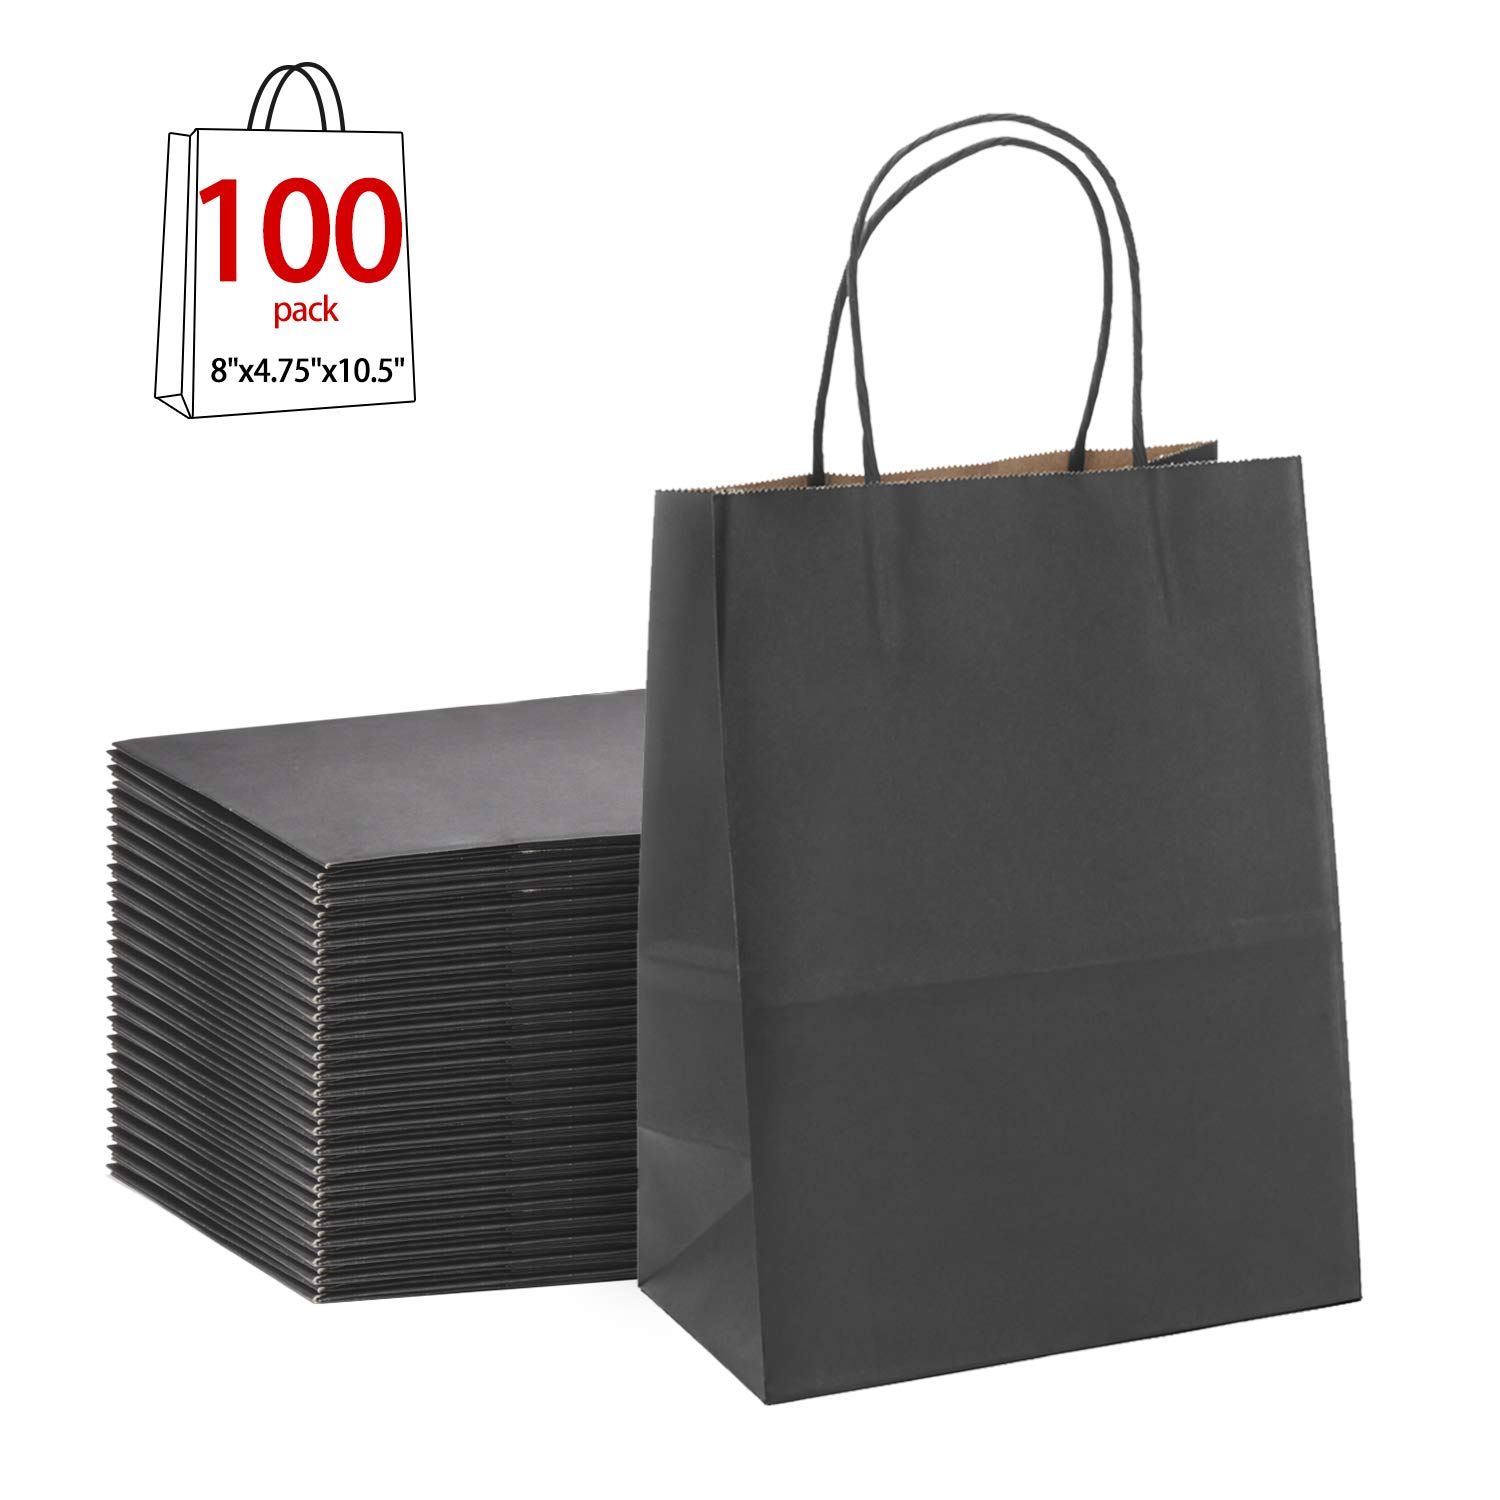 Black Gift Bags 8x4.75x10.5''100Pcs GSSUSA Sturdy Shopping Bags,Party Bags,Merchandise Bag, Kraft Bags, Retail Bags, Black Paper Bags with Handles